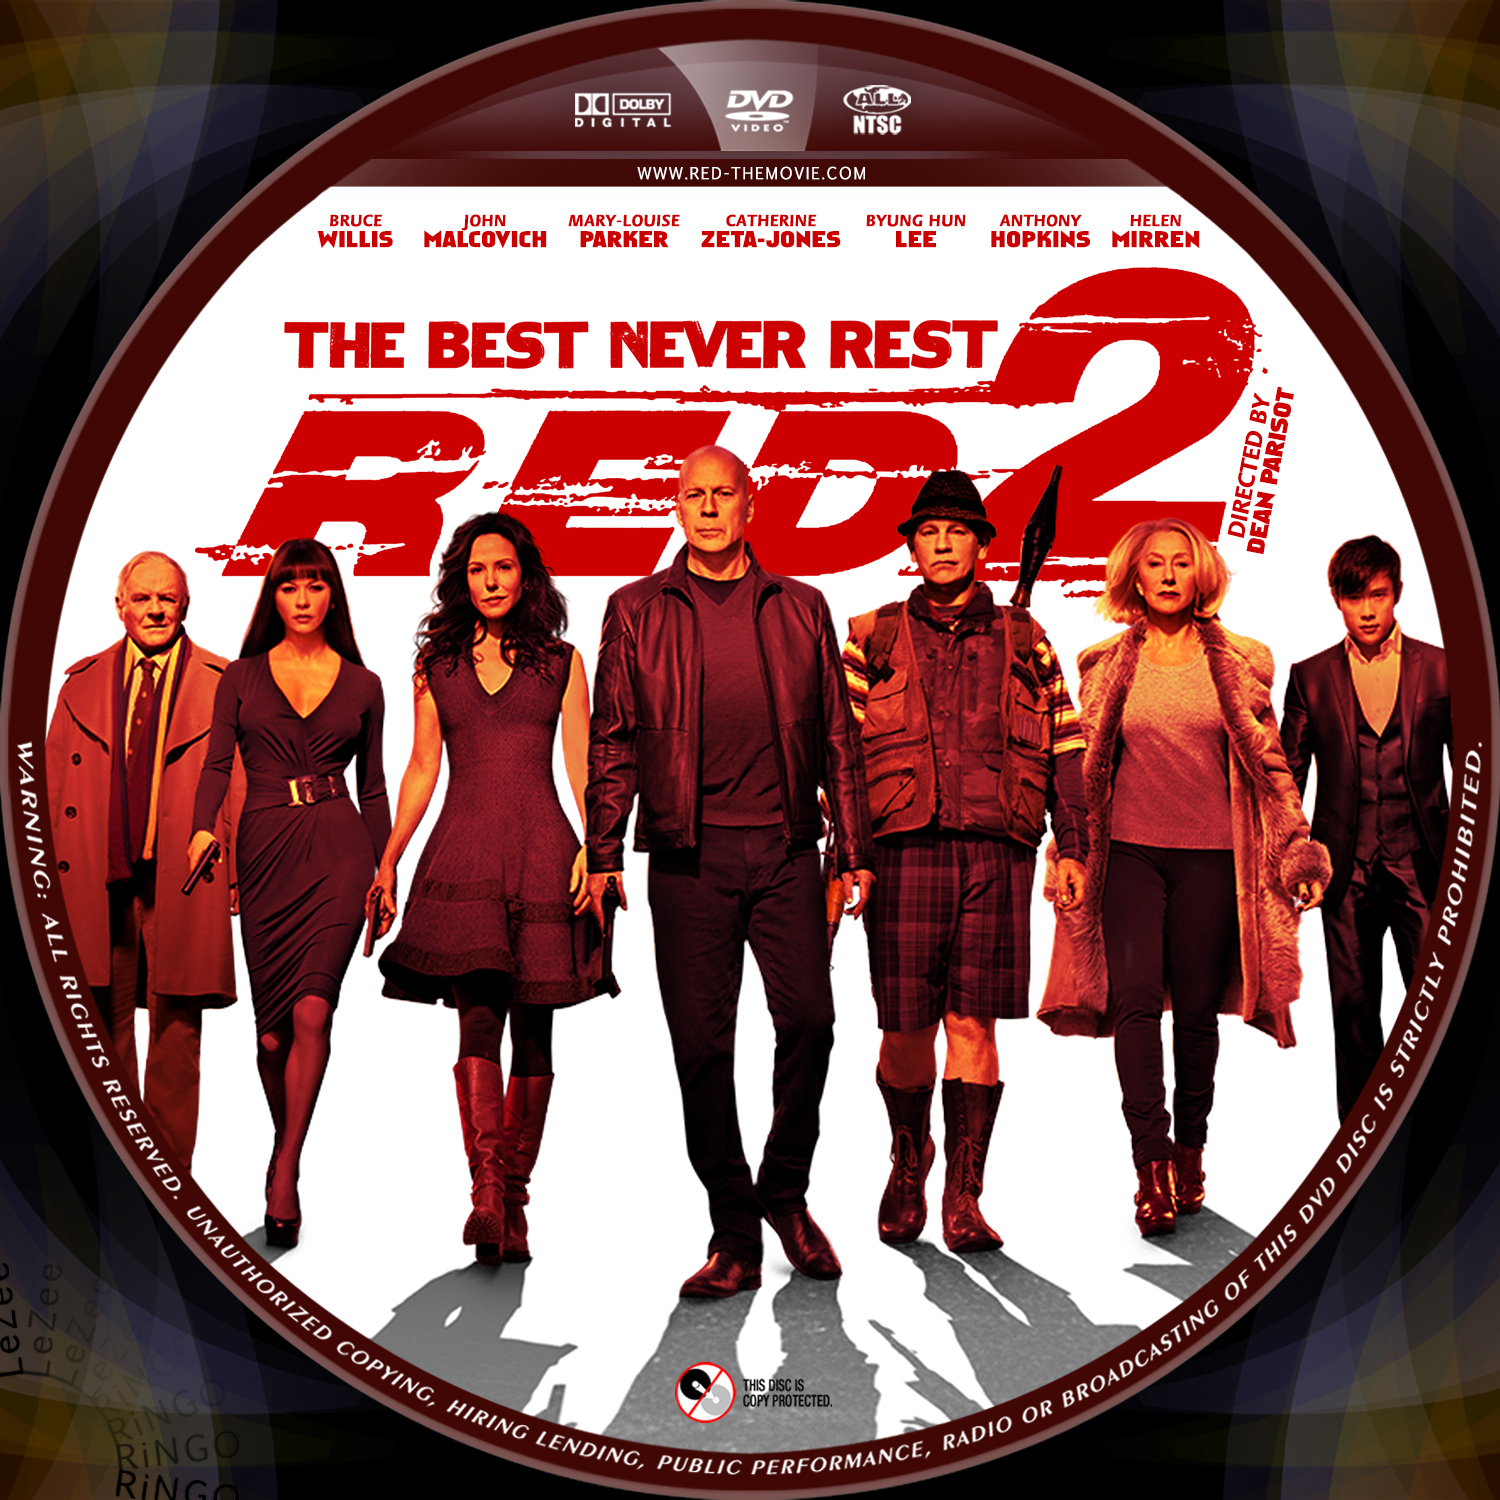 Red 2 Cover covers box...